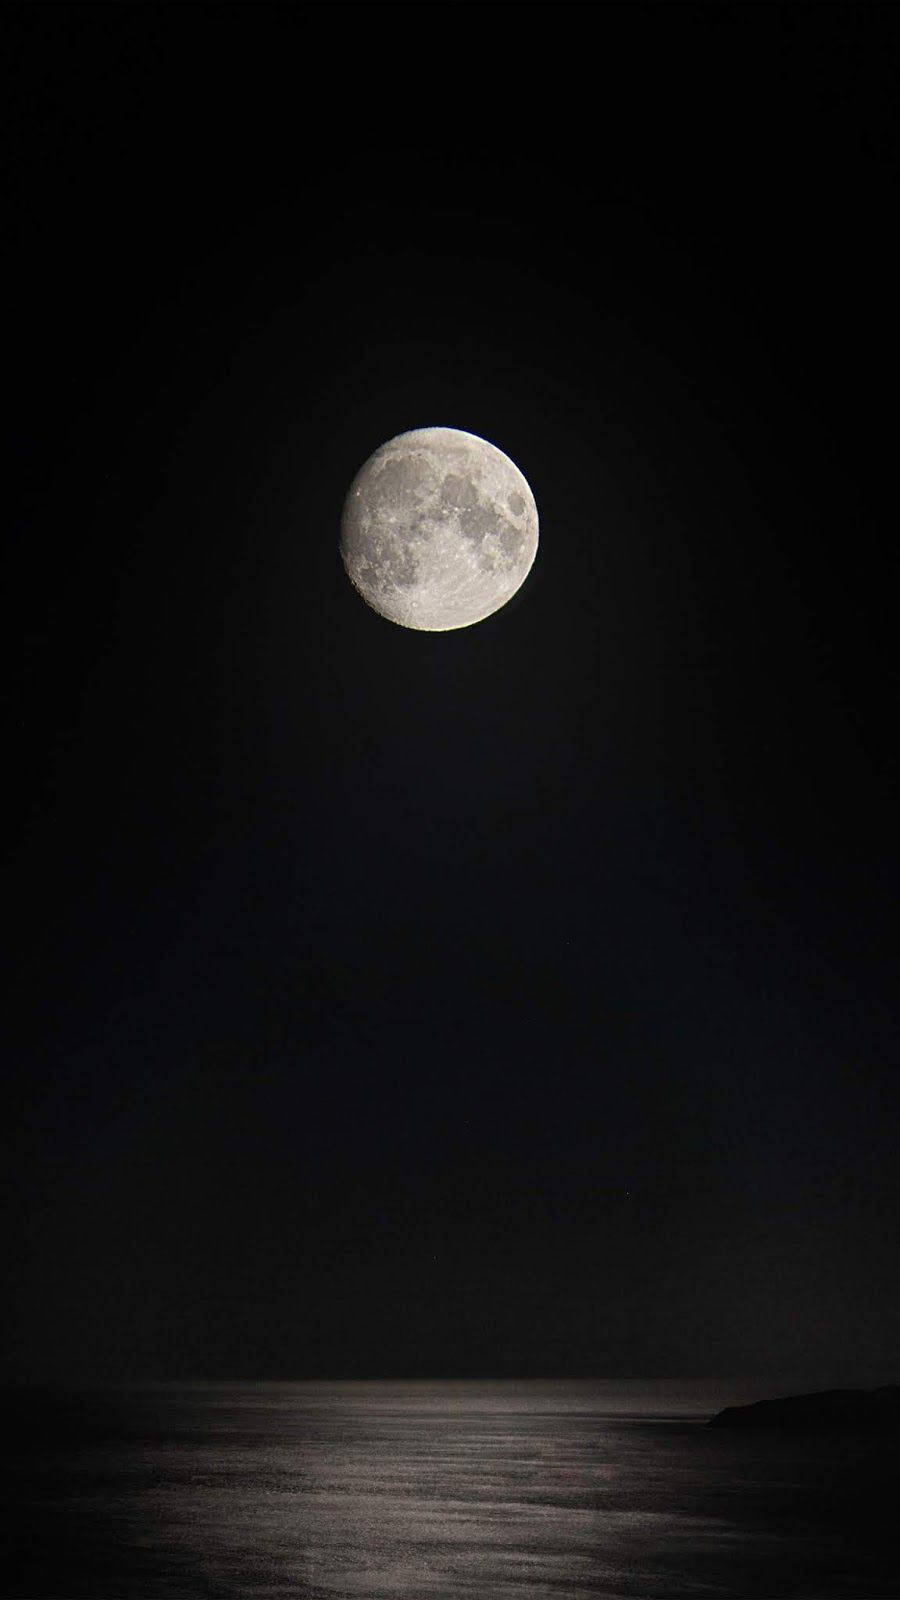 Midnight Full Moon In 2020 With Images Dark Wallpaper Iphone Black Hd Wallpaper Iphone Black Phone Wallpaper